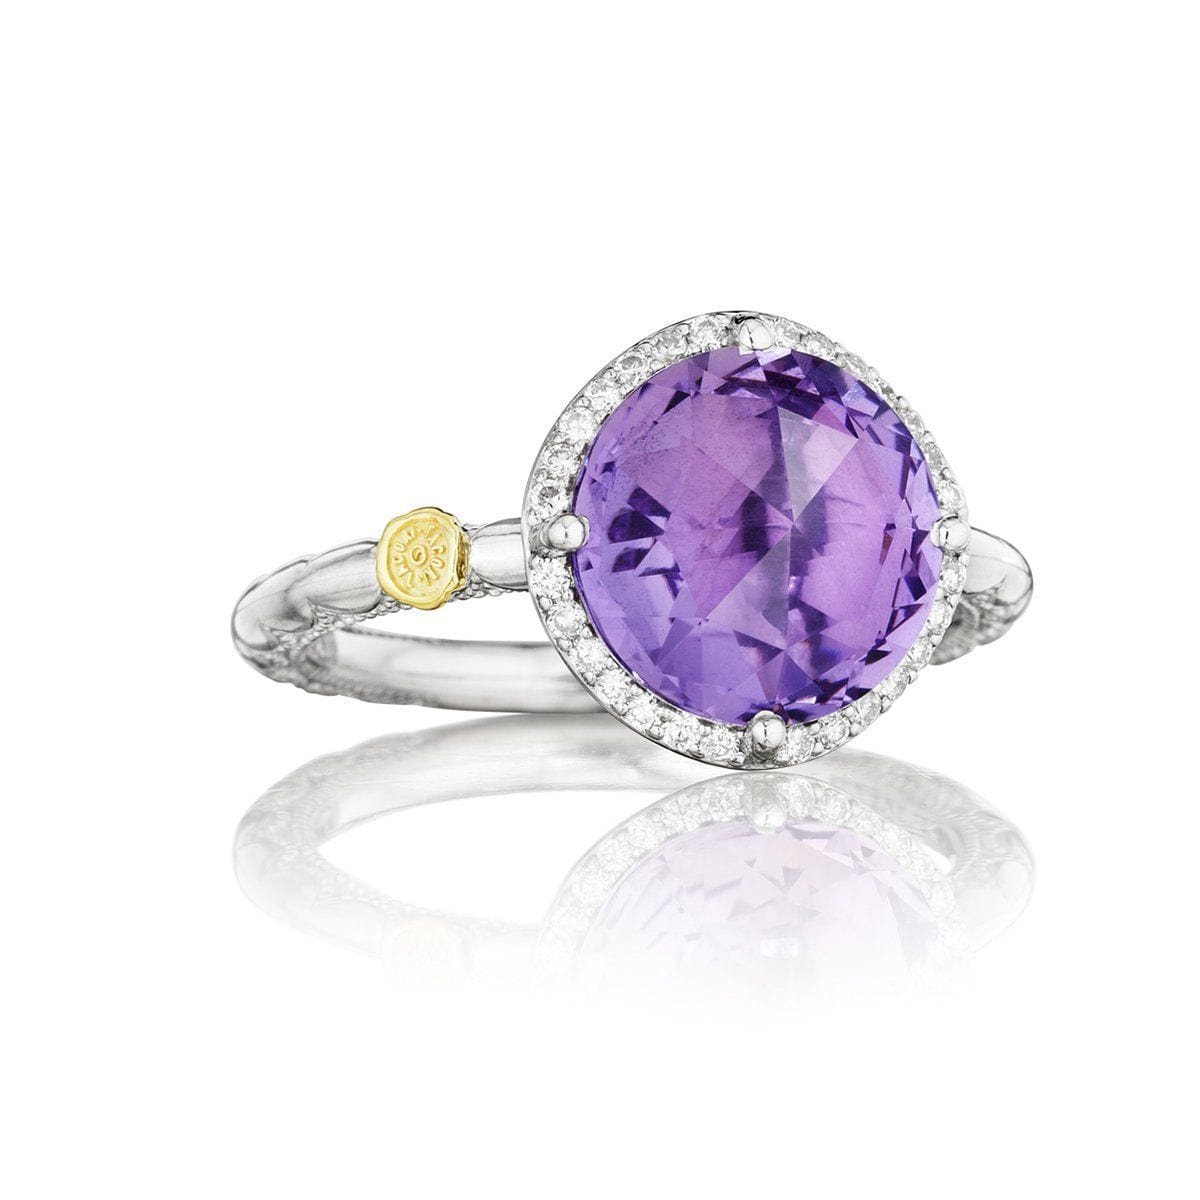 Silver Diamond Purple Amethyst Ring - SR14501-Tacori-Renee Taylor Gallery